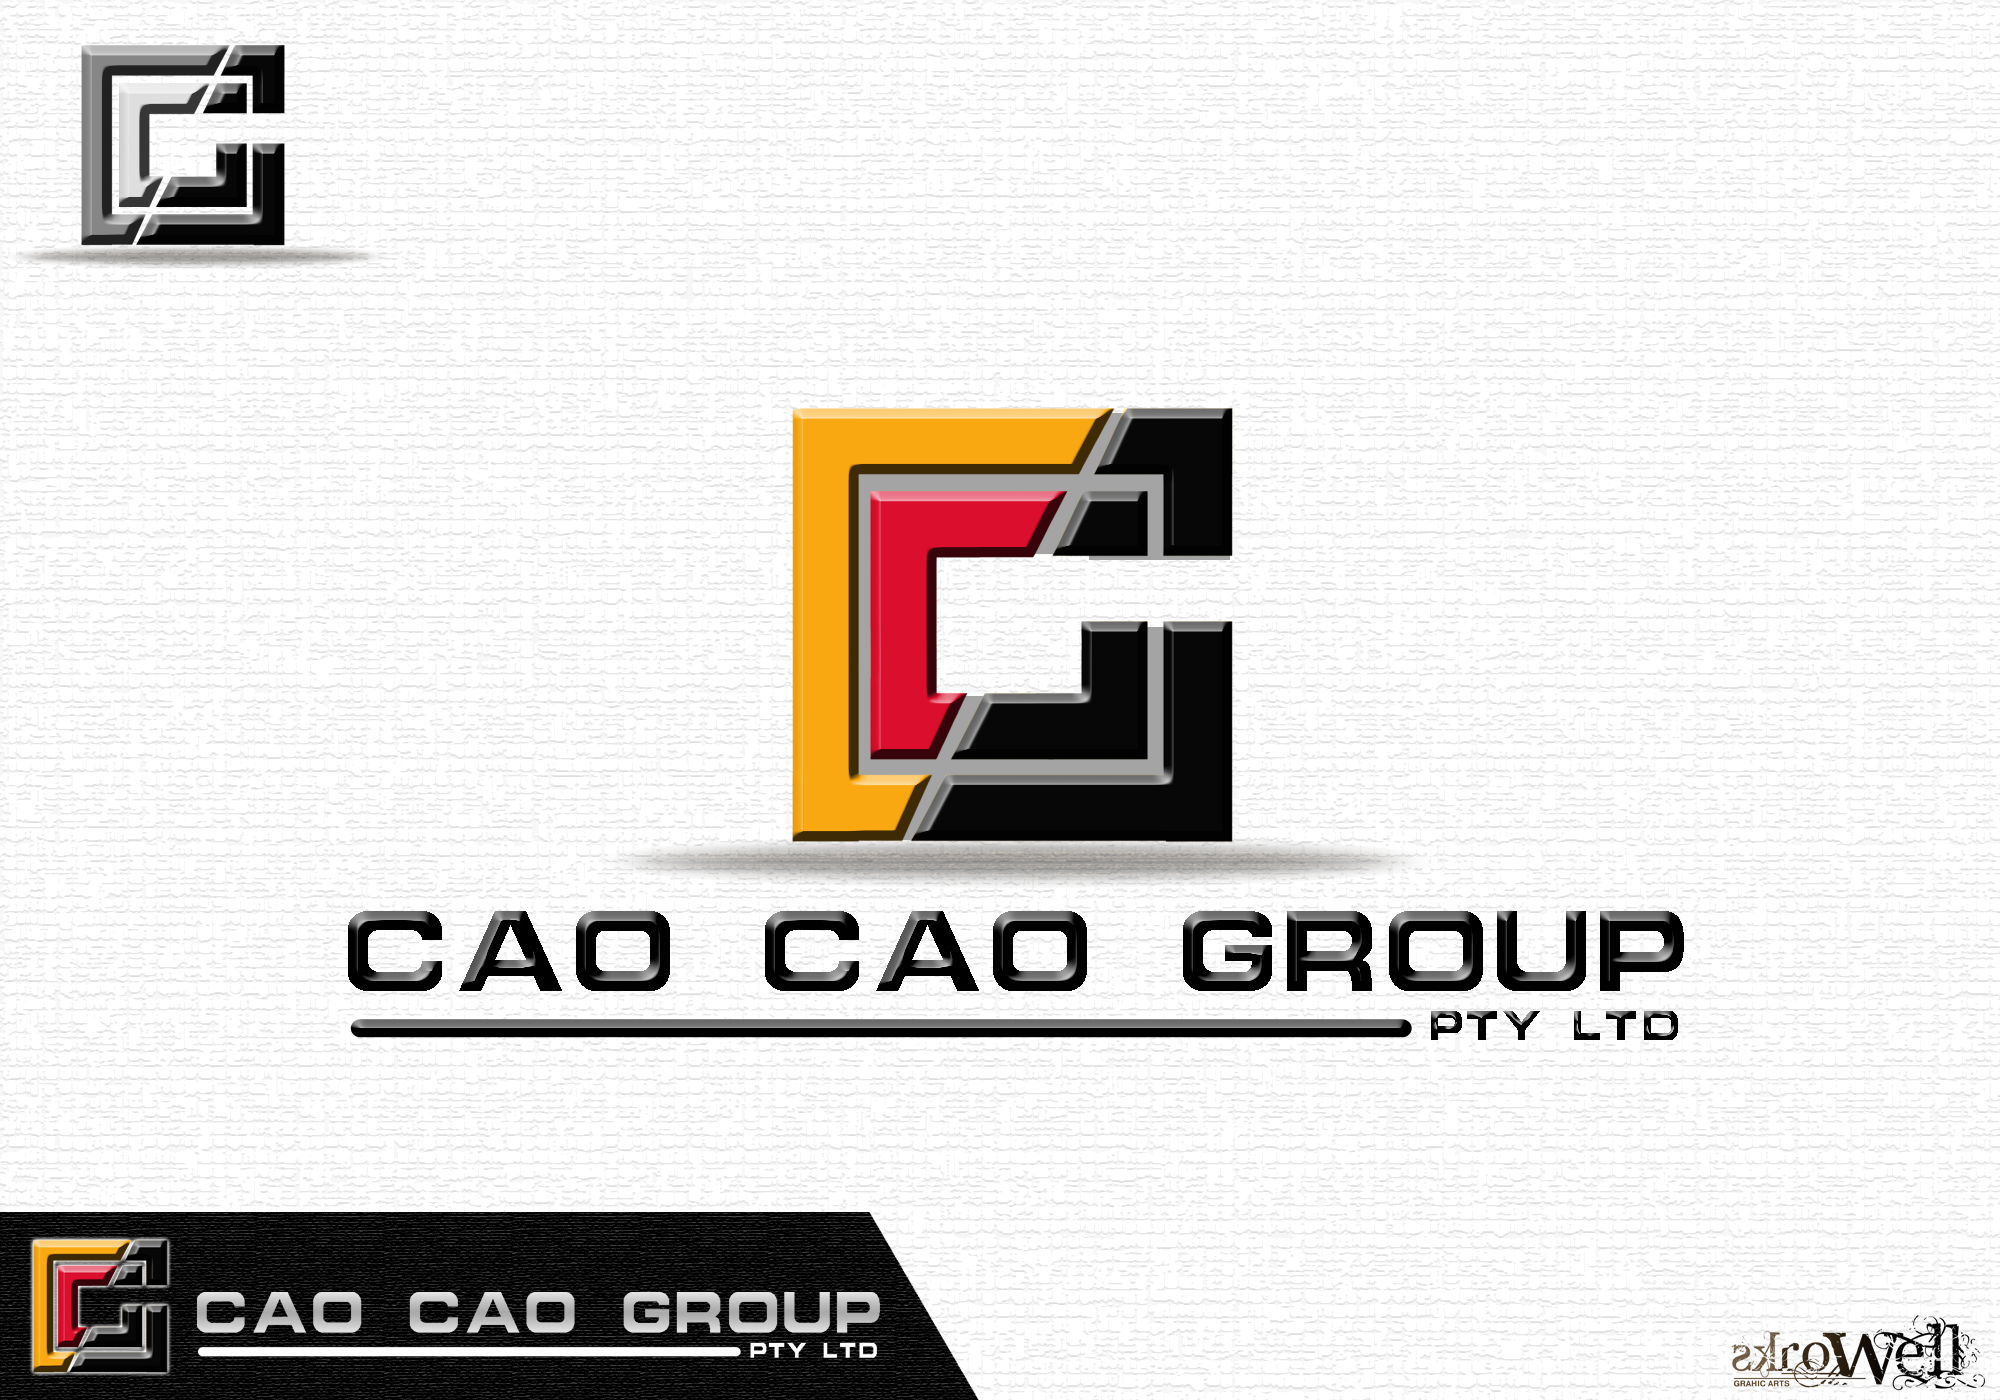 Logo Design by Rowell - Entry No. 131 in the Logo Design Contest cao cao group pty ltd Logo Design.